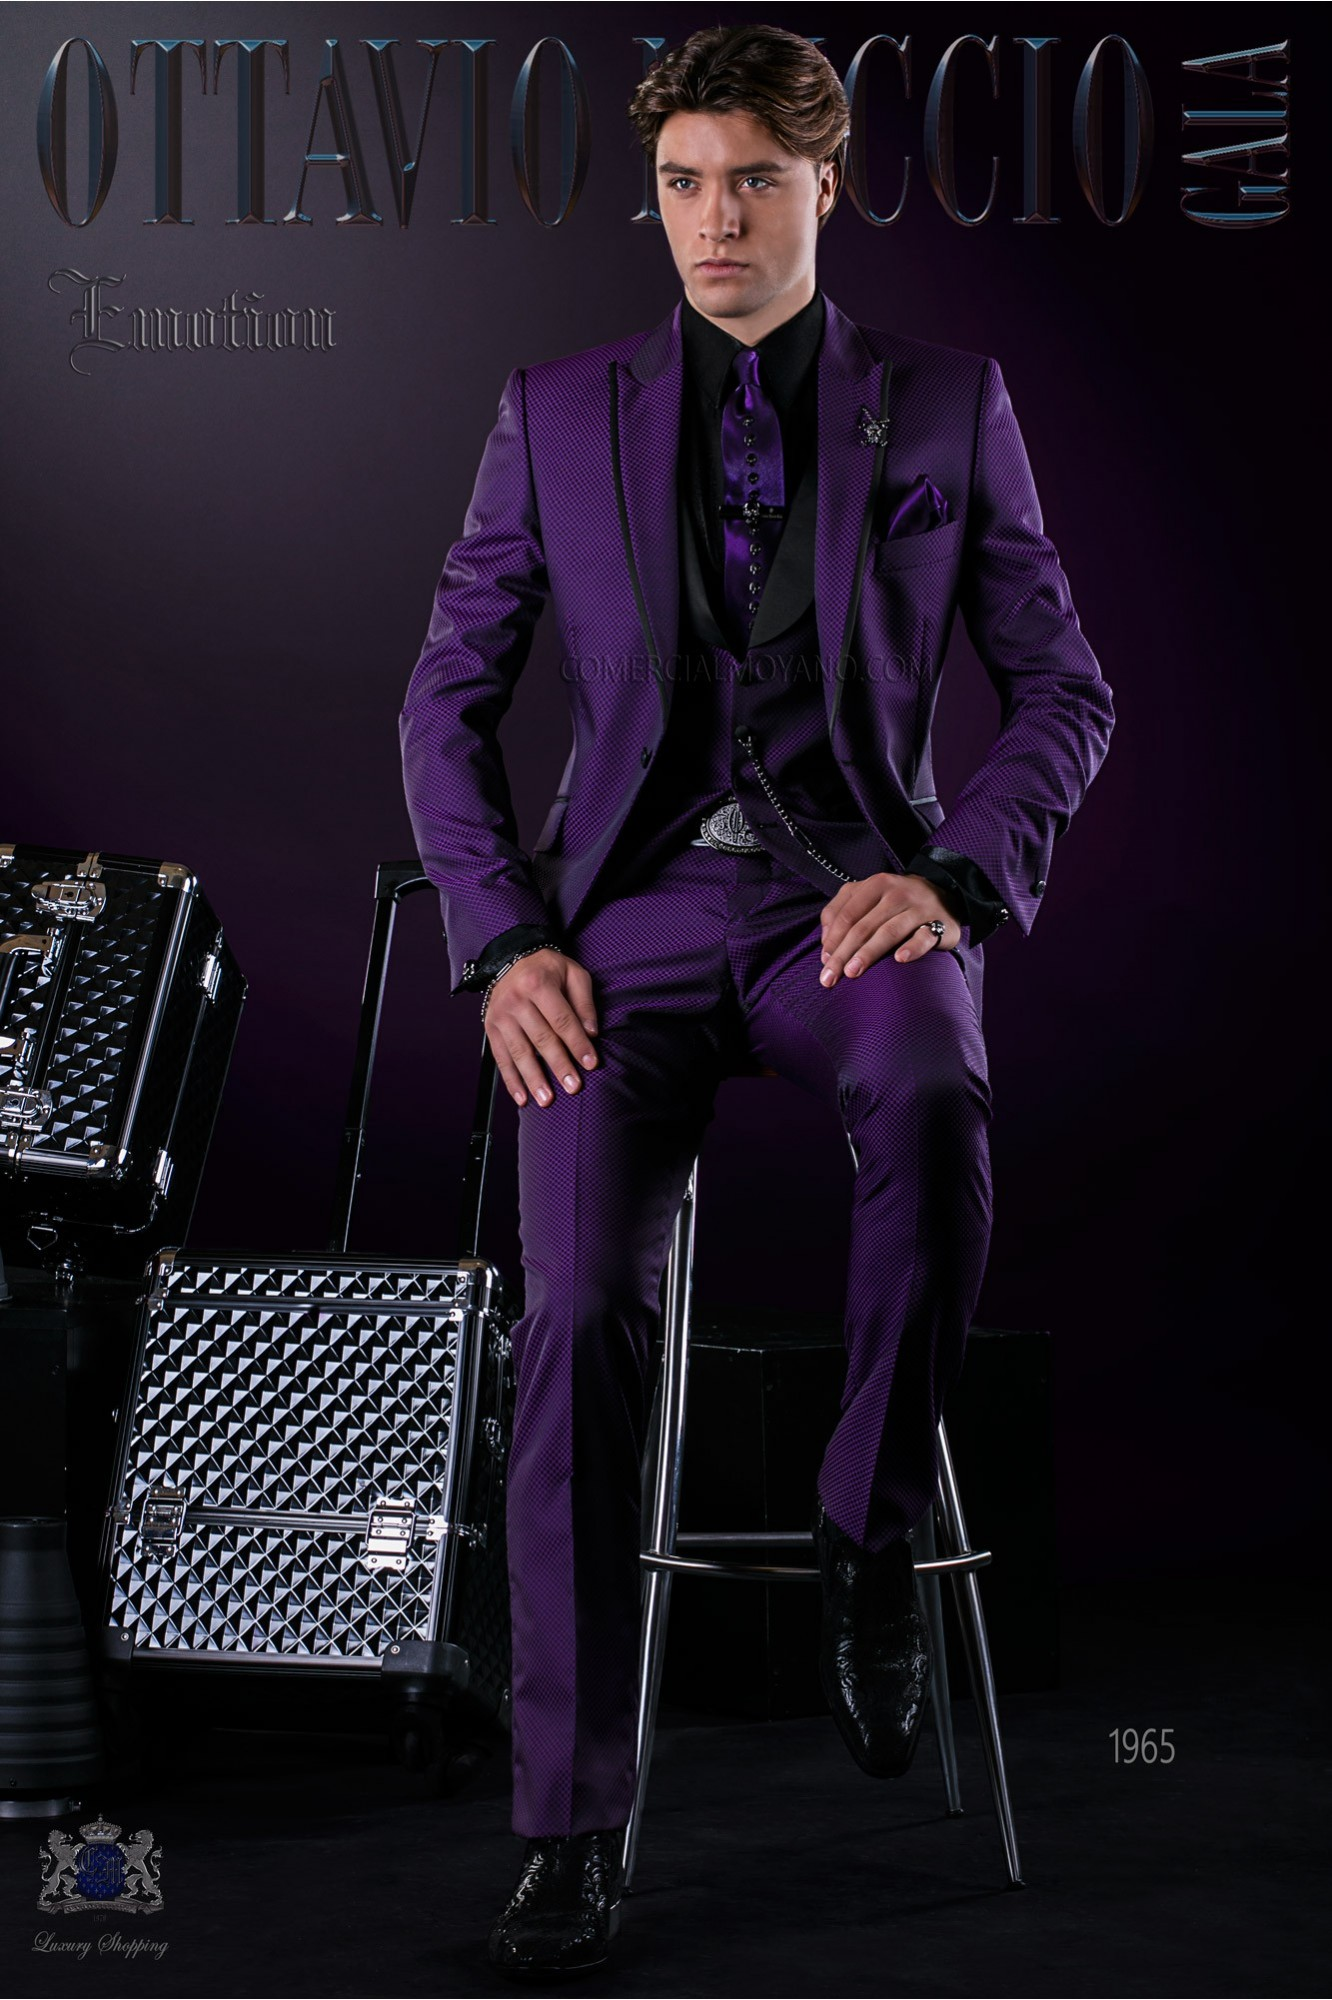 Italian fashion bespoke suit purple micro design model 1965 Ottavio Nuccio Gala